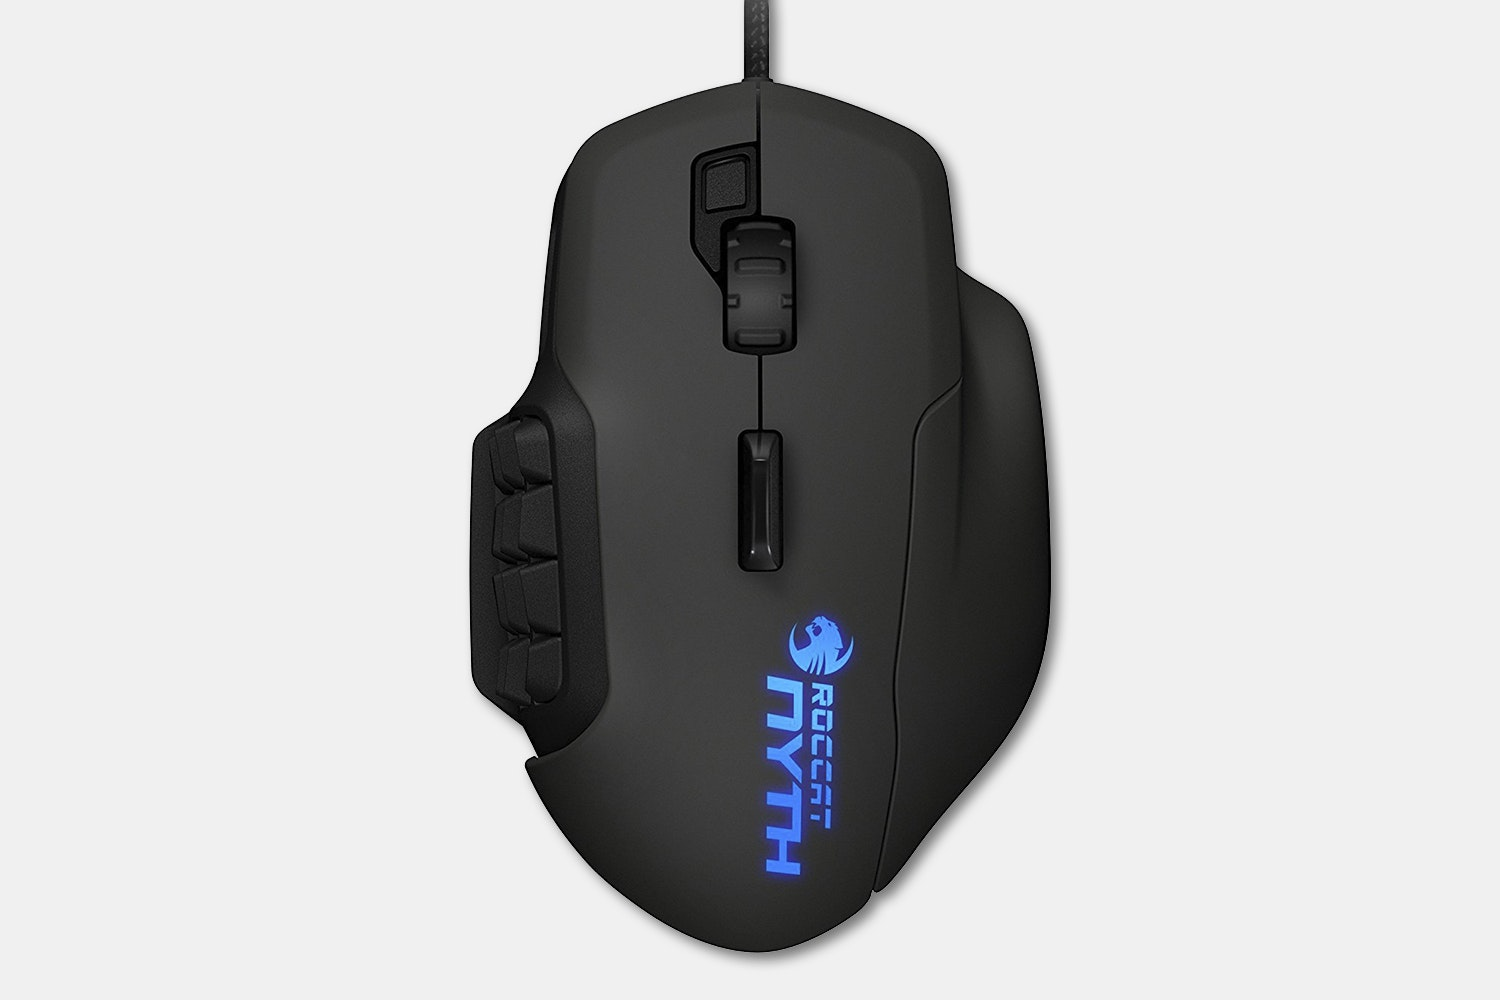 Nyth Modular Mmo Gaming Mouse - Black (+ $15)